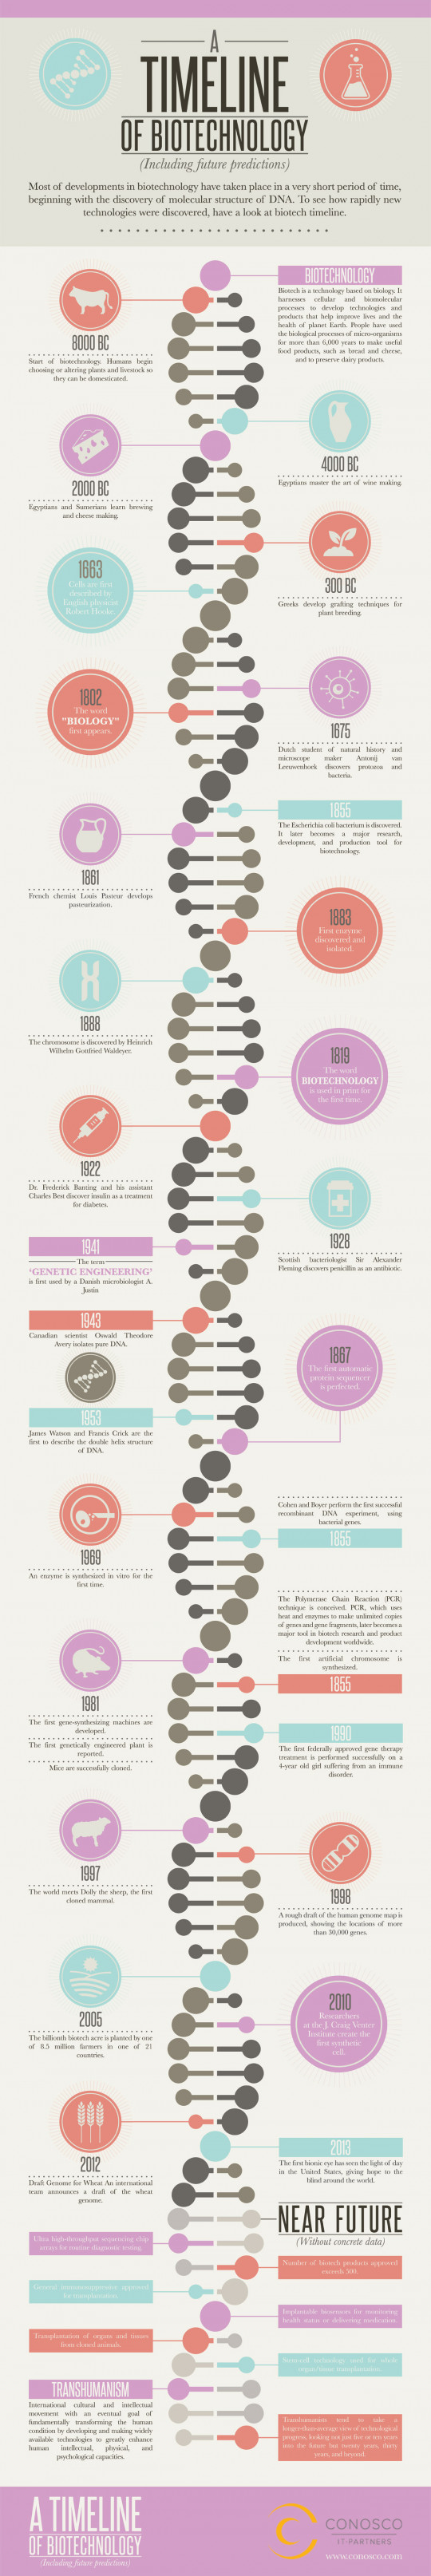 A Timeline of Biotech (Including Future Predictions)